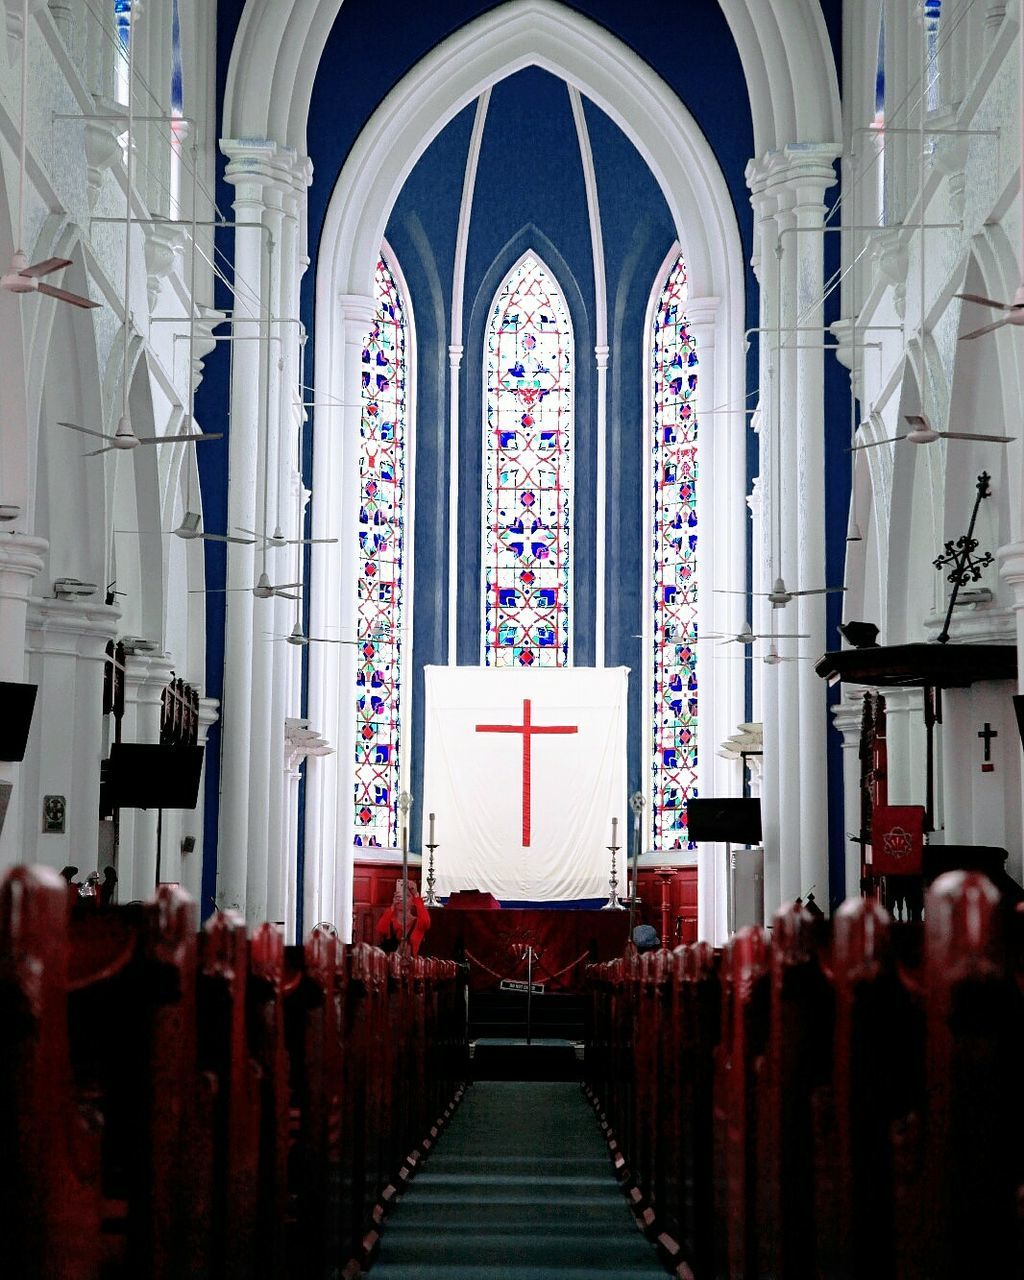 religion, place of worship, spirituality, arch, indoors, architecture, no people, day